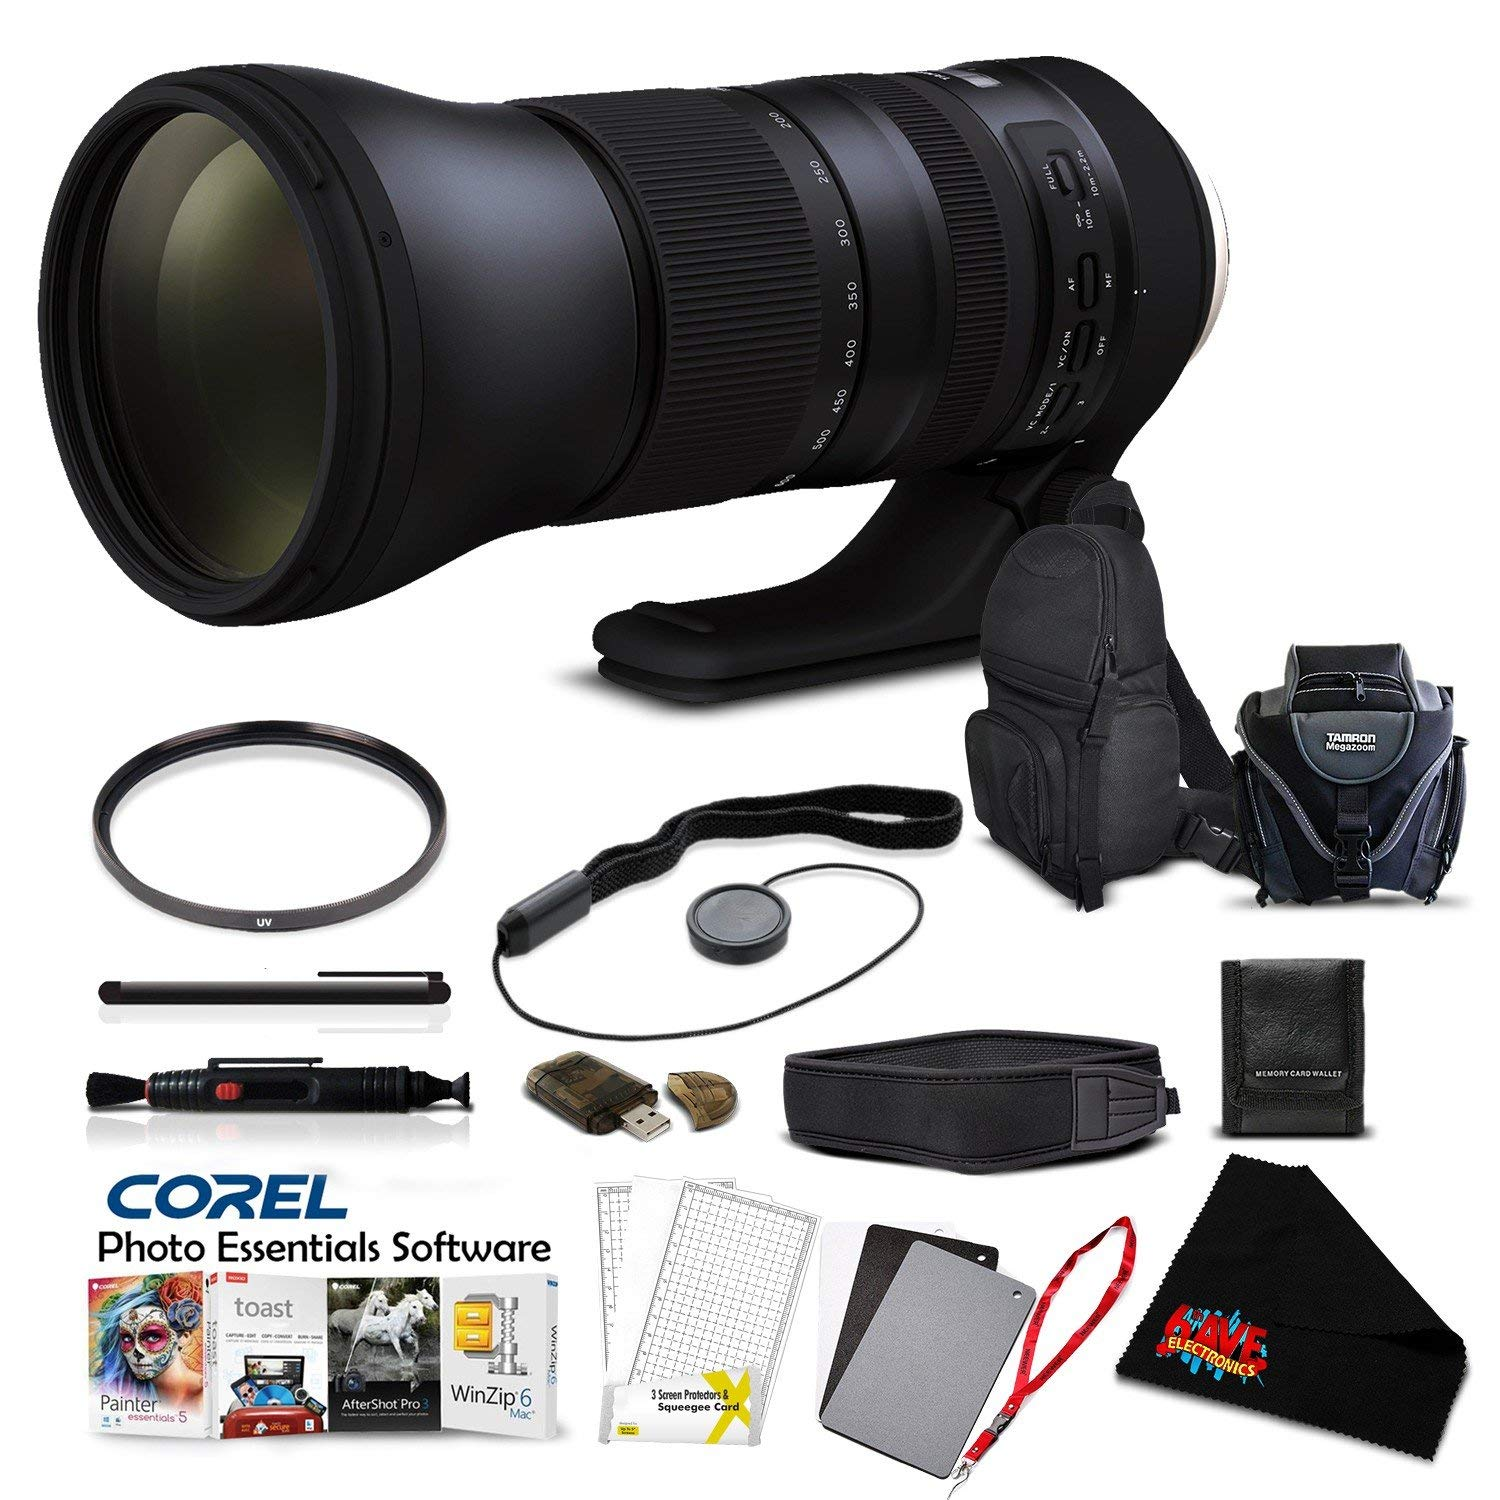 Tamron SP 150-600mm f/5-6.3 Di VC USD G2 Lens (International Version) for Canon EF Pro Accessory Kit by Tamron